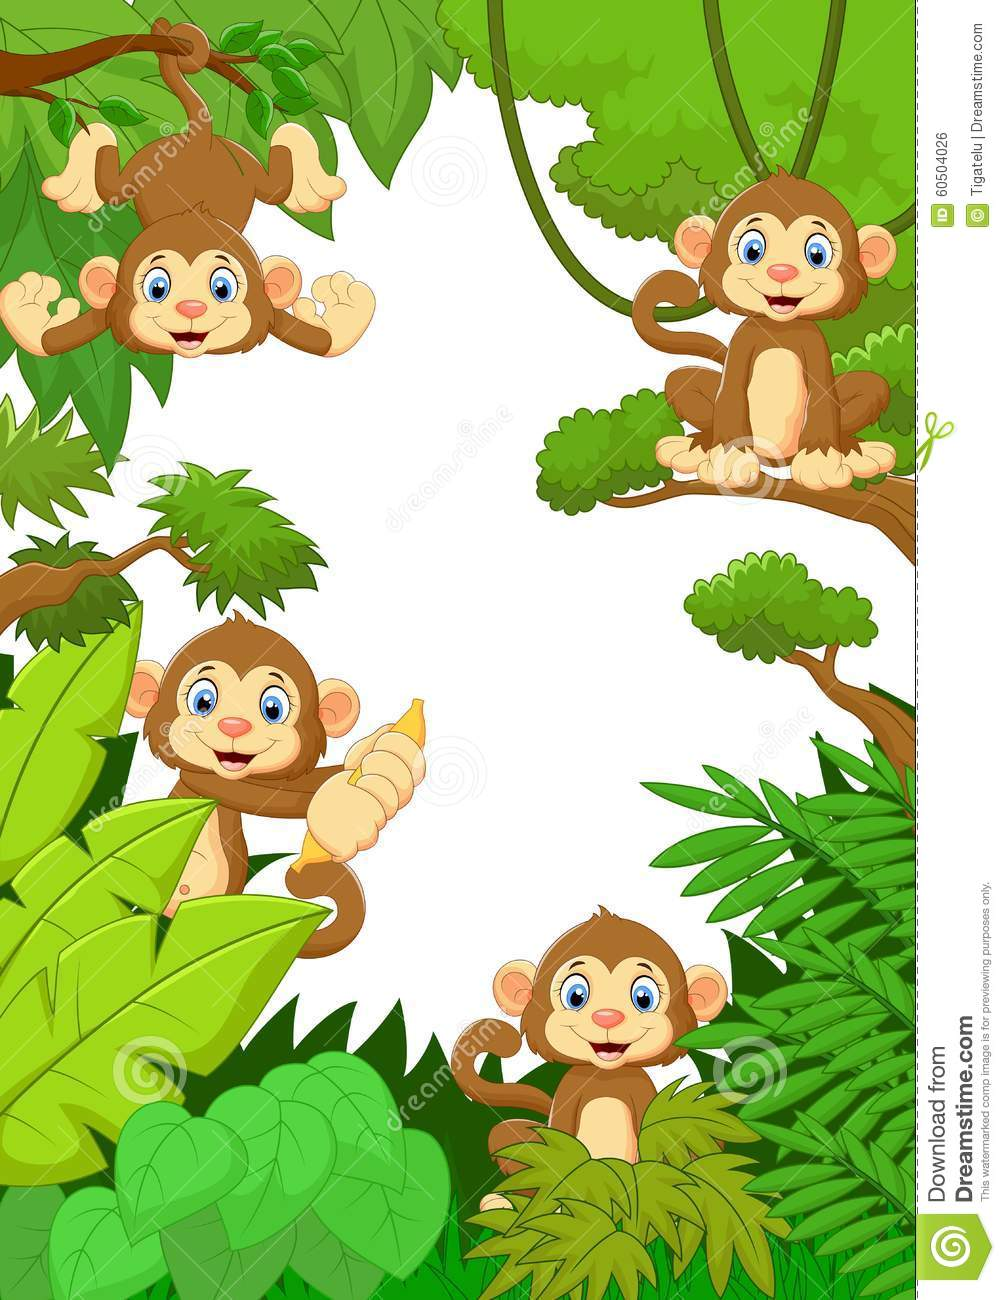 Cute Ape Wallpaper Cartoon Happy Monkey In The Forest Stock Vector